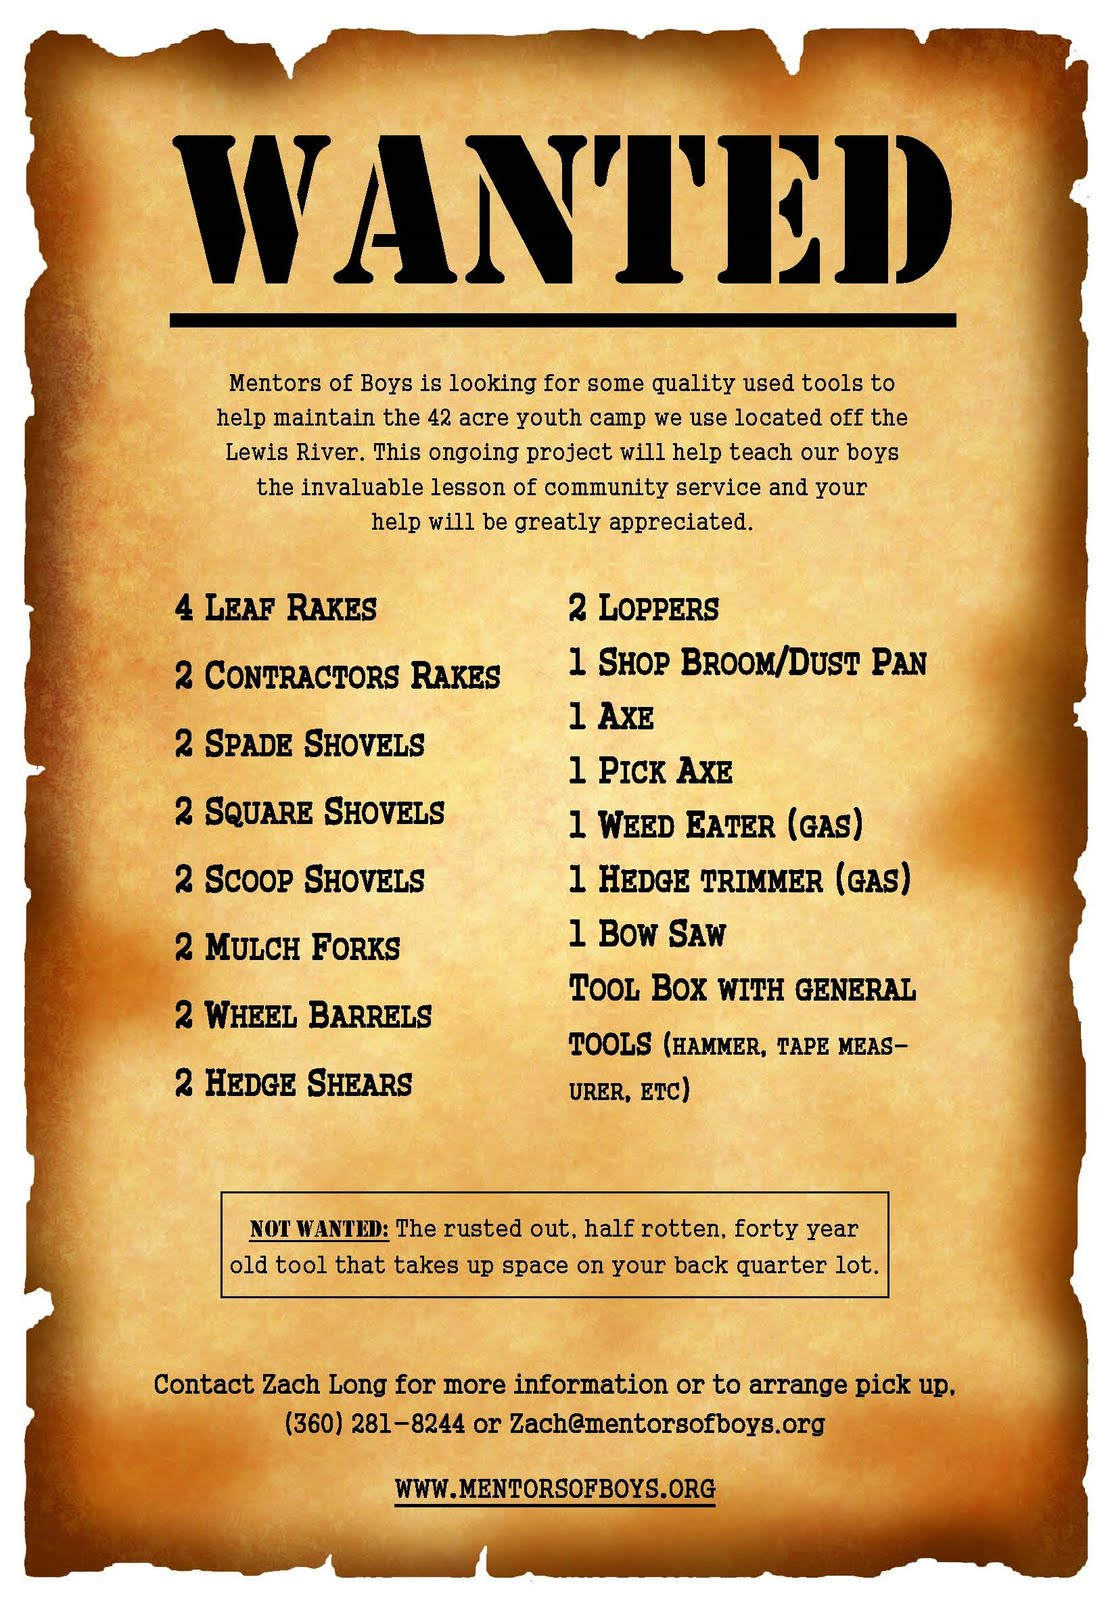 western wanted sign template – Sample Wanted Poster